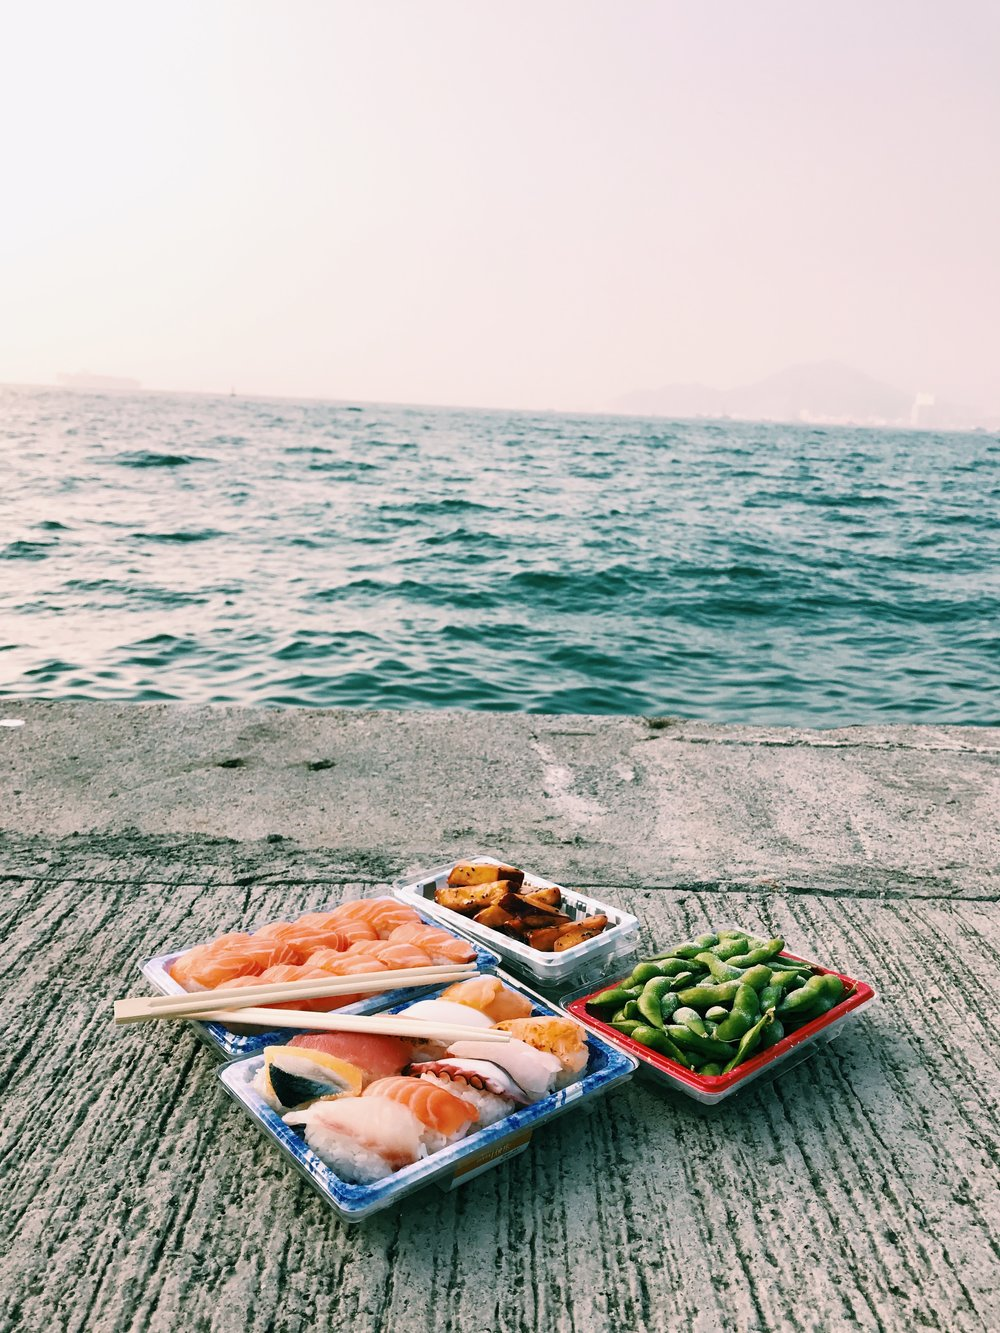 sushi by the sea must be fresh, right?